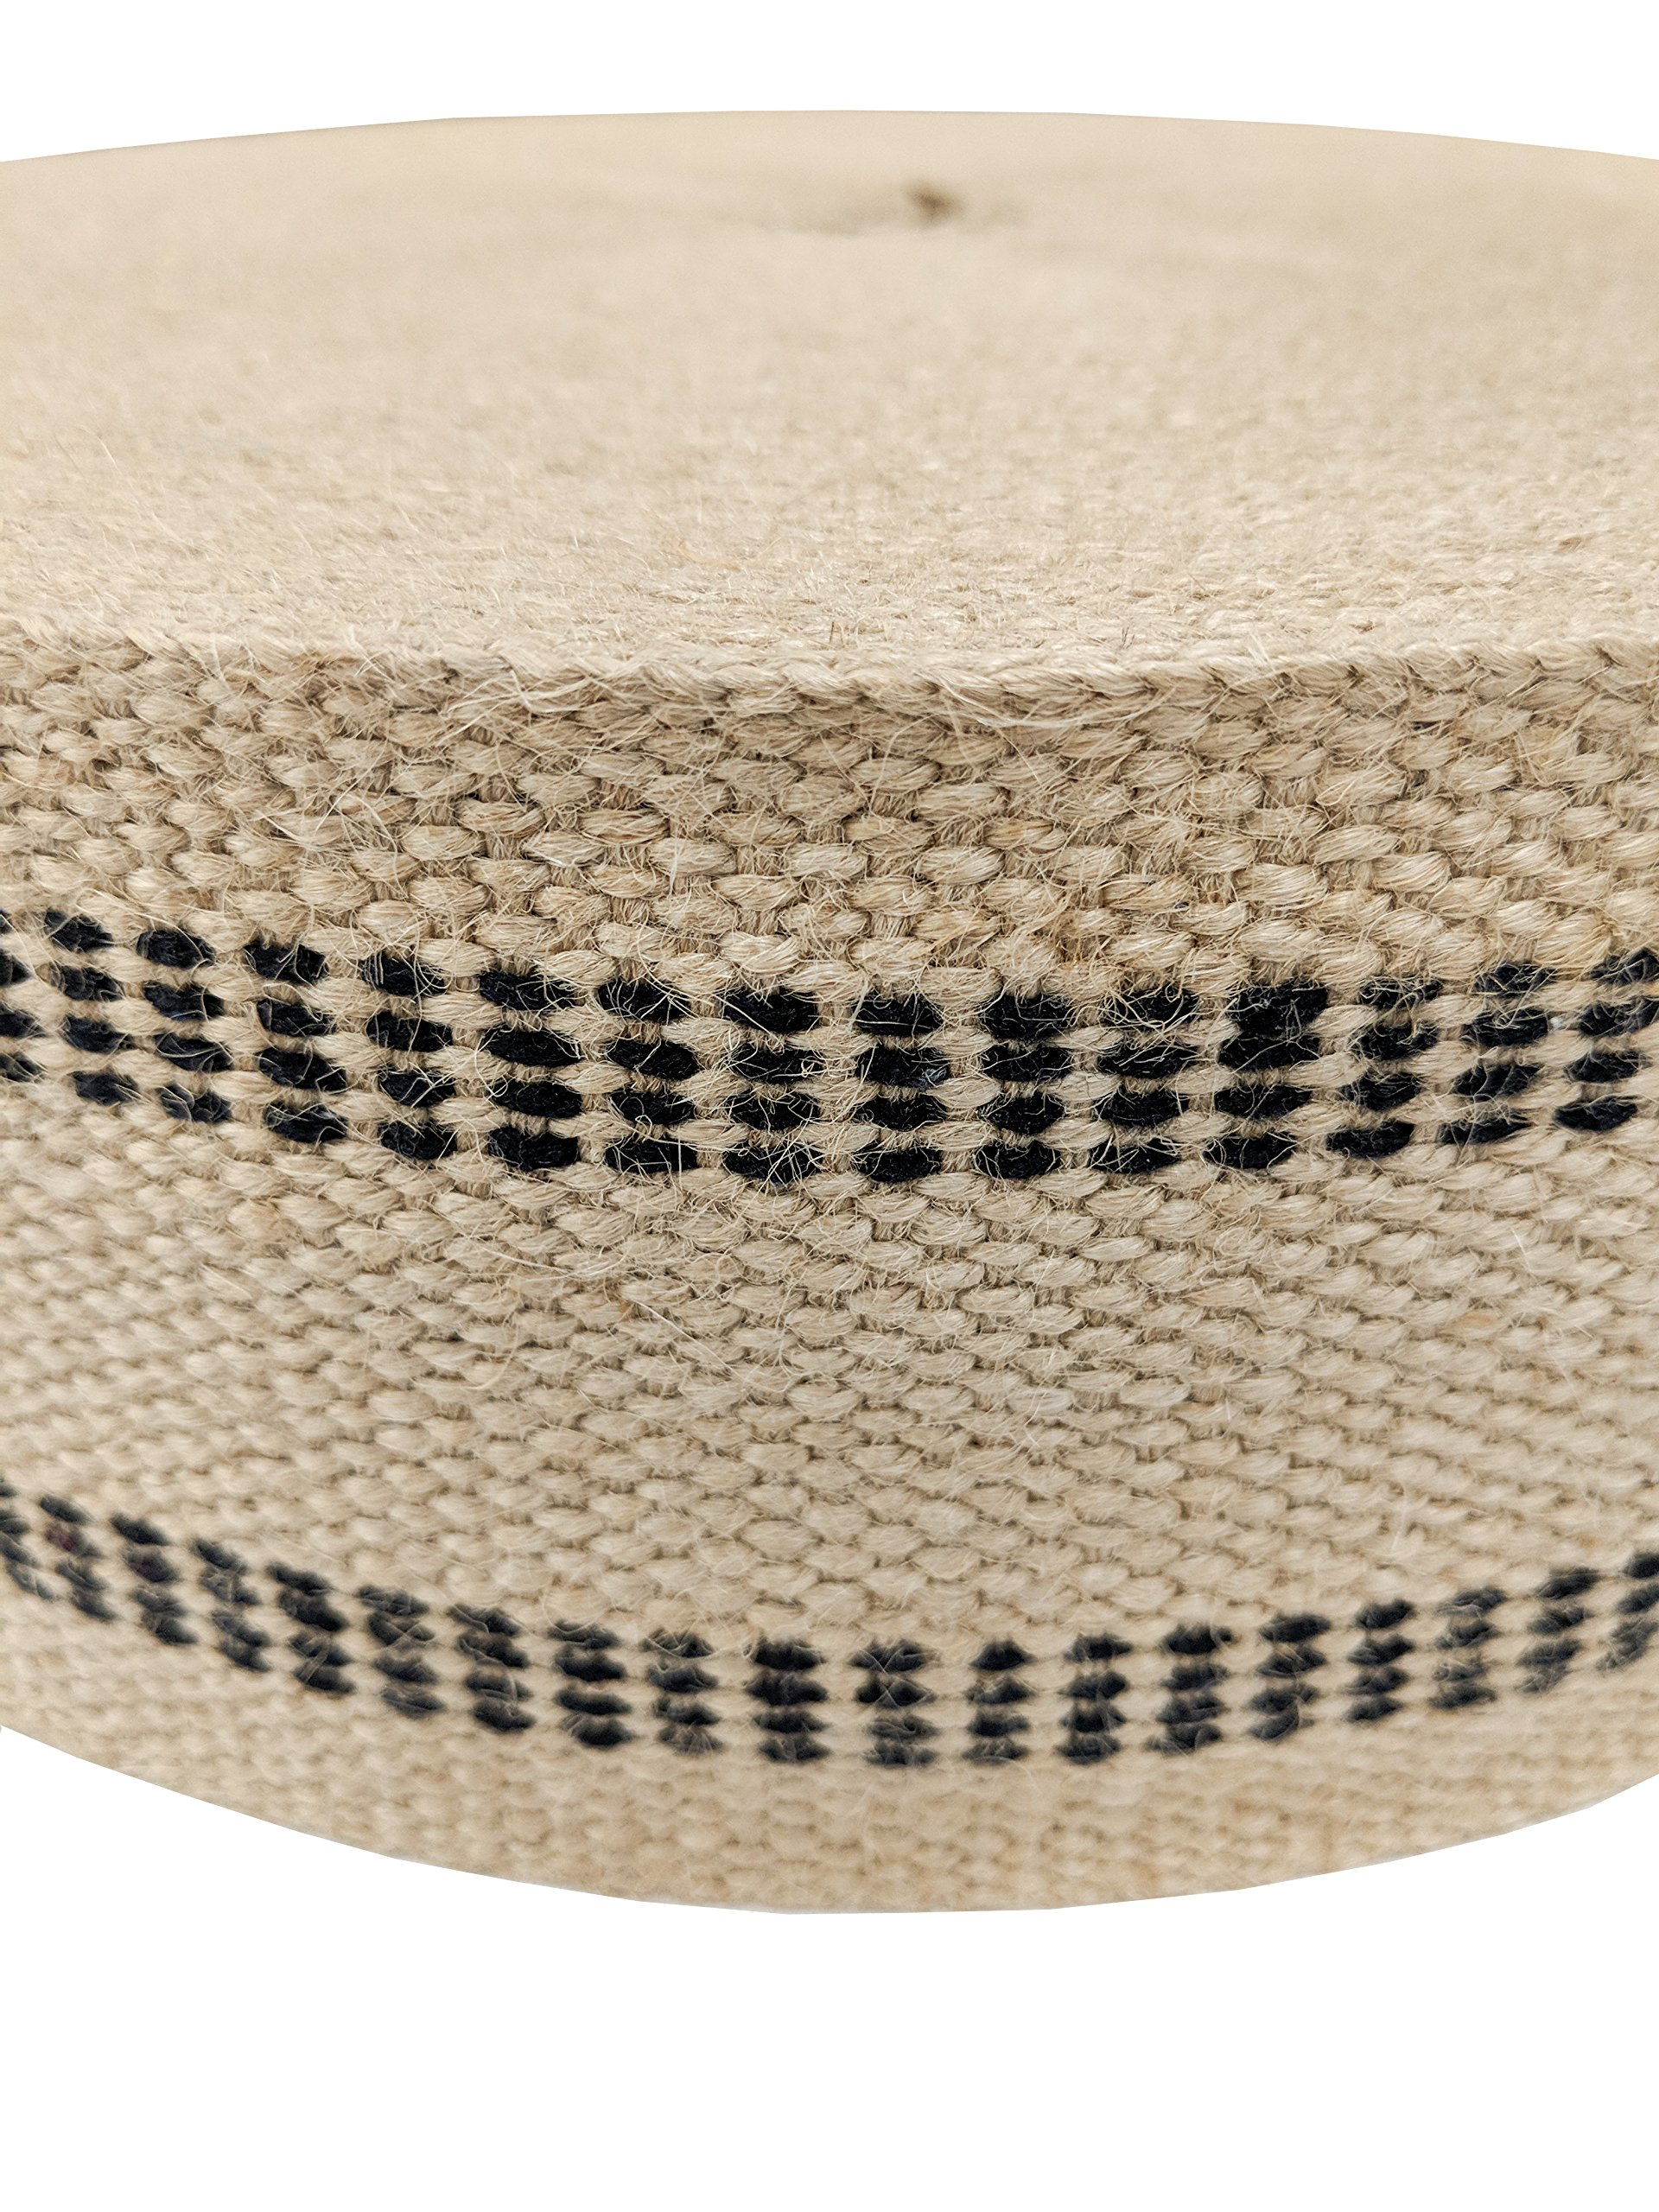 Wholesale Upholstery Supply 72 YDS Upholstery or Craft Jute Webbing, 3.5'' x 72 Yds - Natural with Black Stripes by Wholesale Upholstery Supply (Image #2)